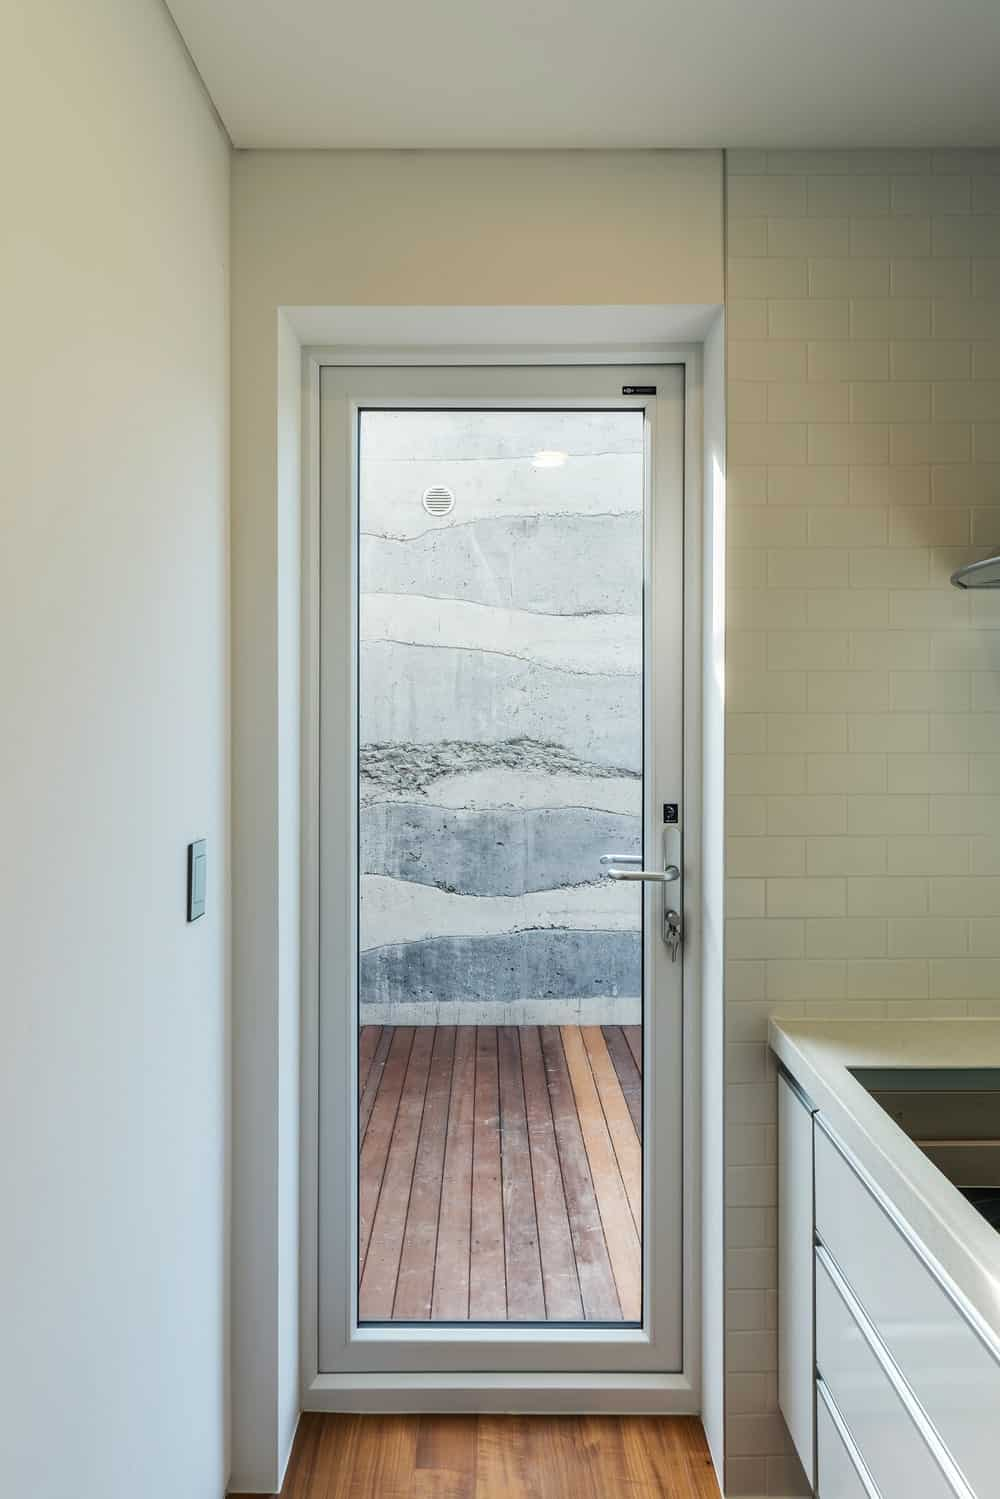 This is a close look at the glass door of the kitchen that leads to a wooden walkway outside.